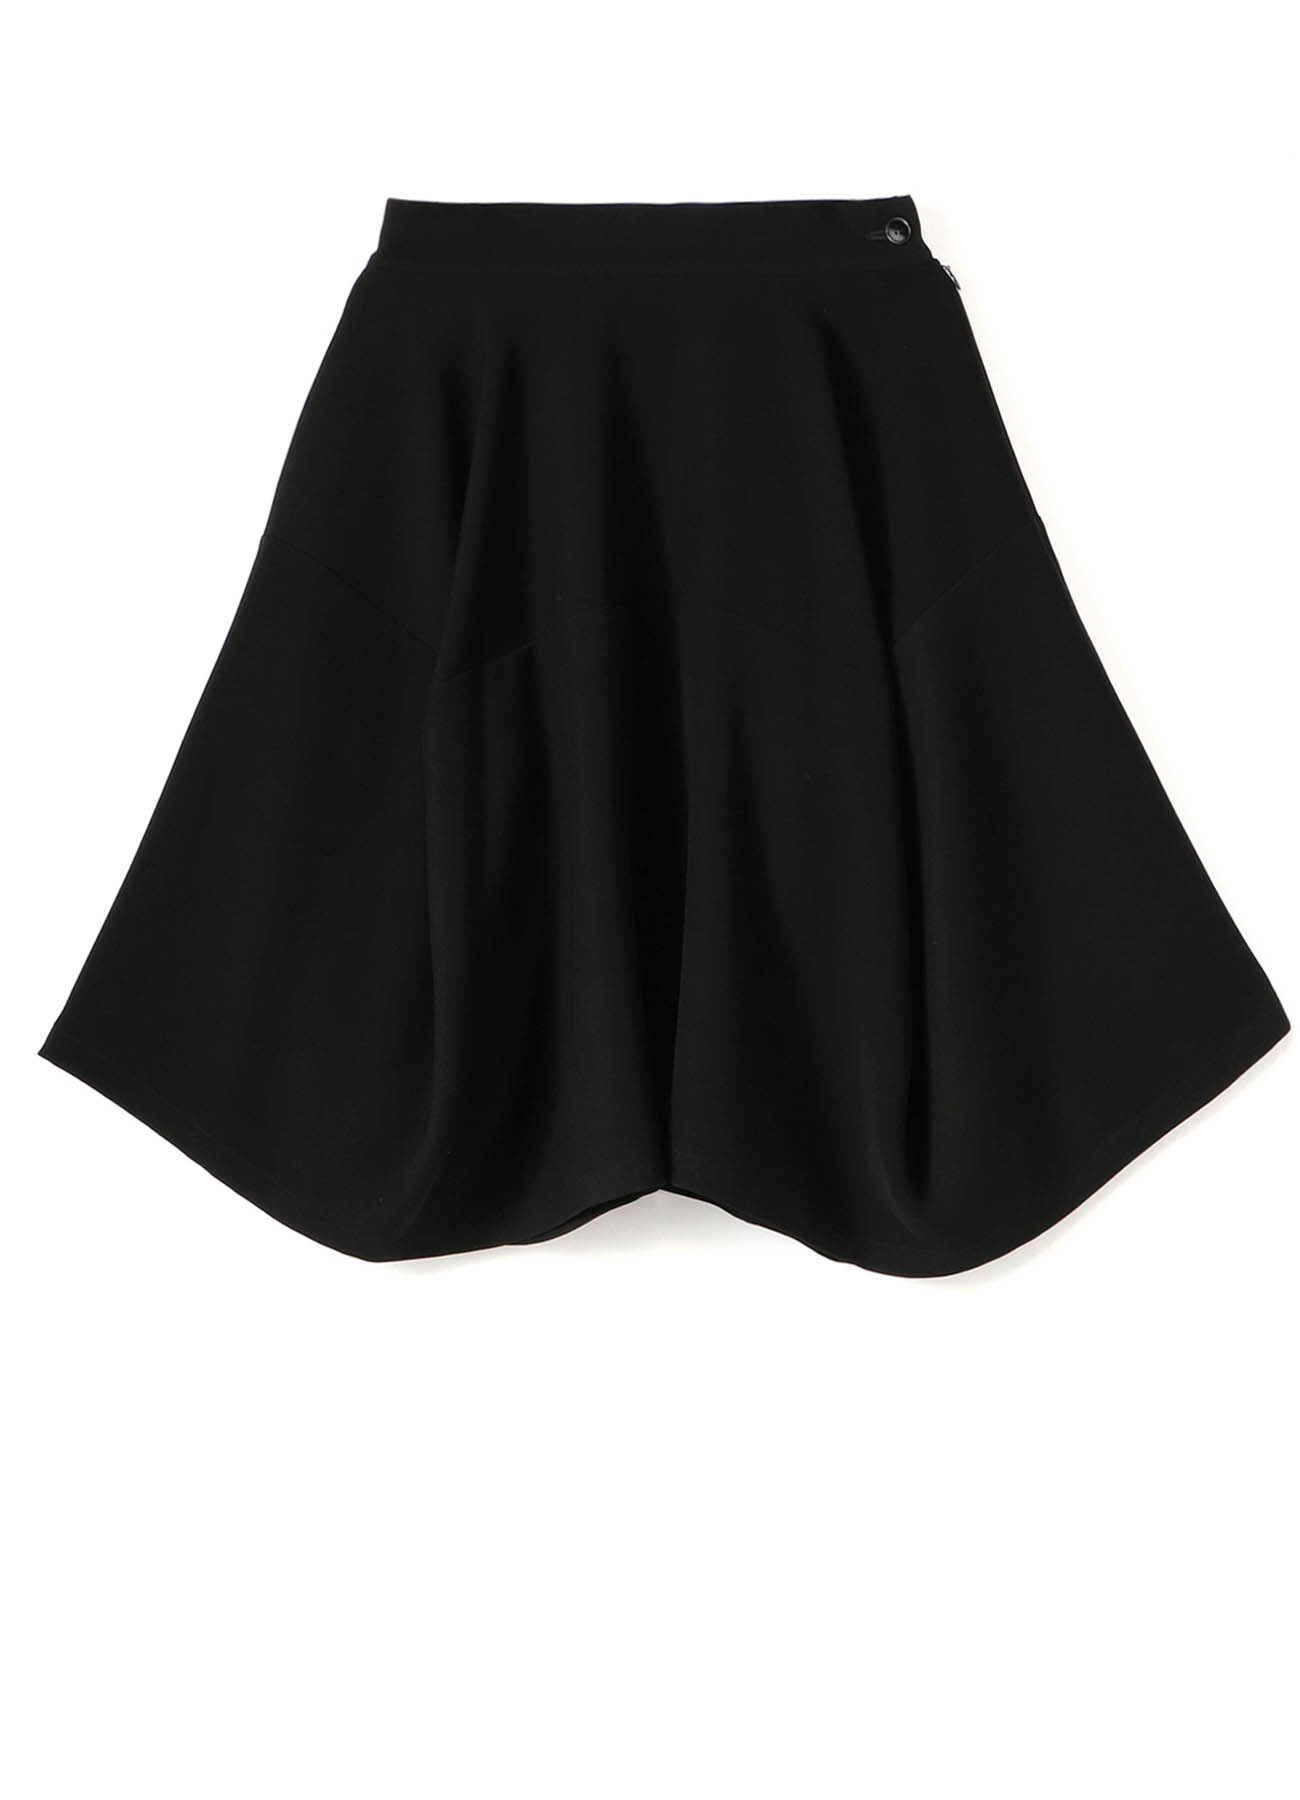 Double Satin Paneled Skirt